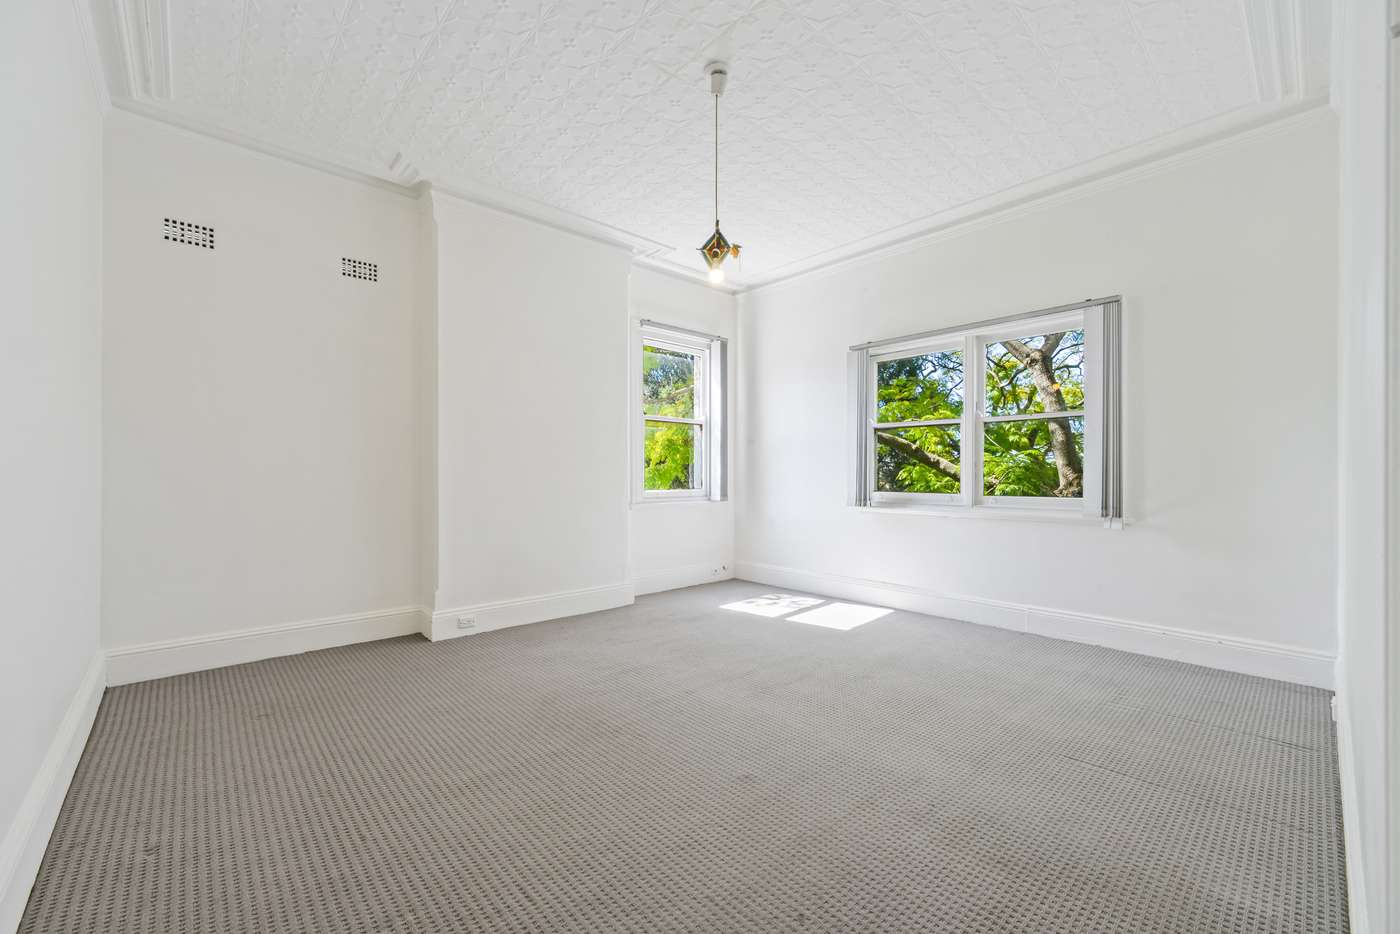 Sixth view of Homely house listing, 40 Gower Street, Ashfield NSW 2131